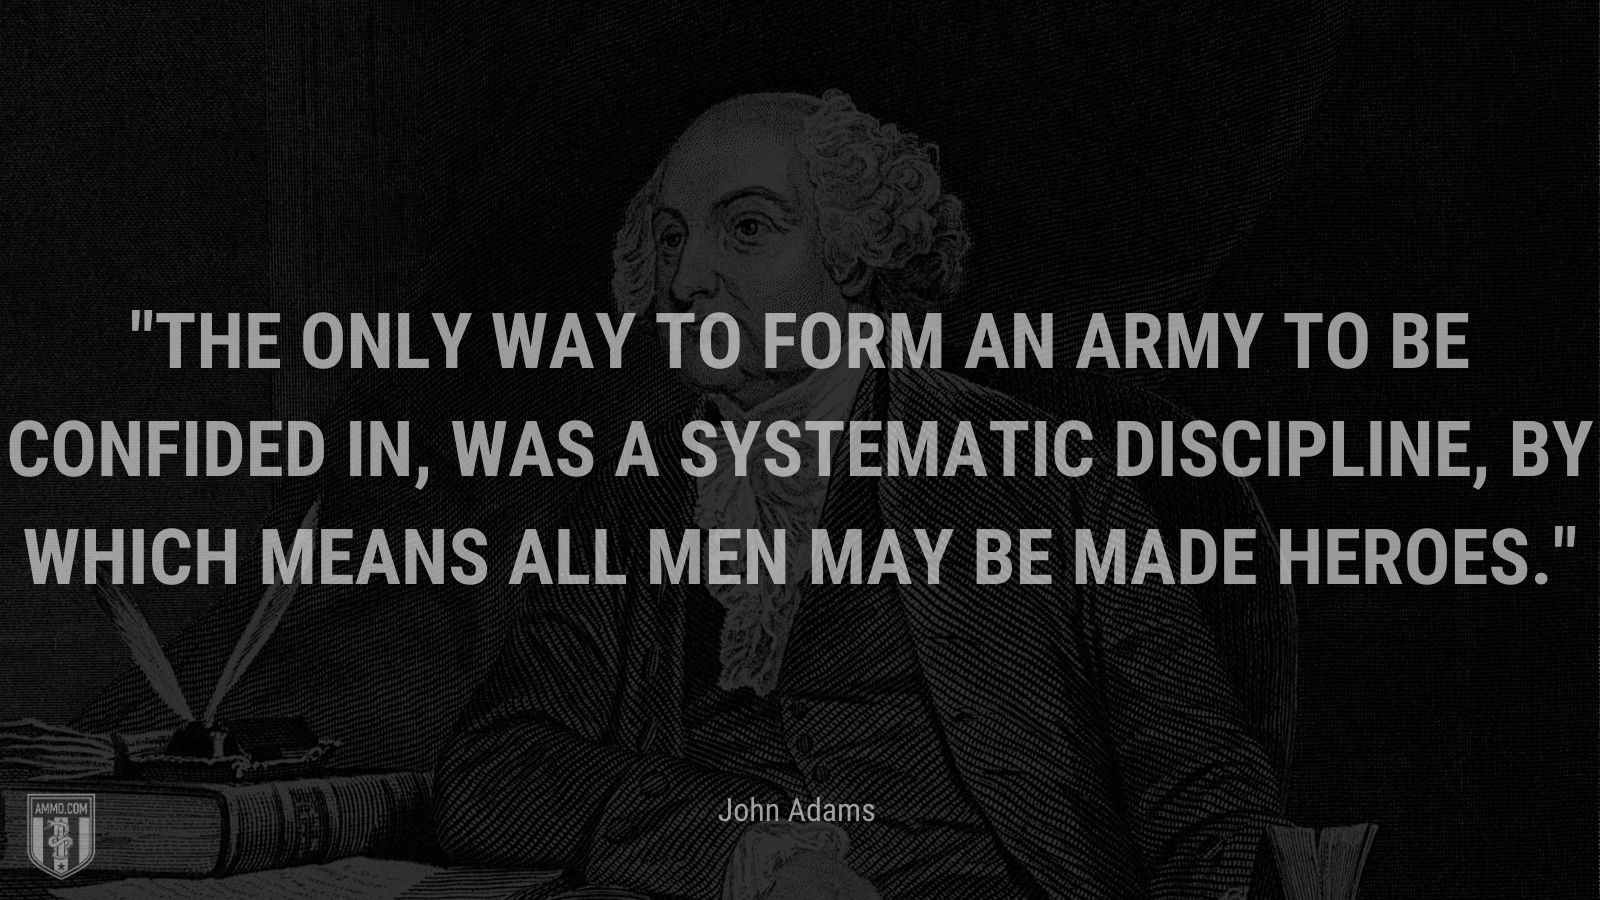 """""""The only way to form an army to be confided in, was a systematic discipline, by which means all men may be made heroes."""" - John Adams"""